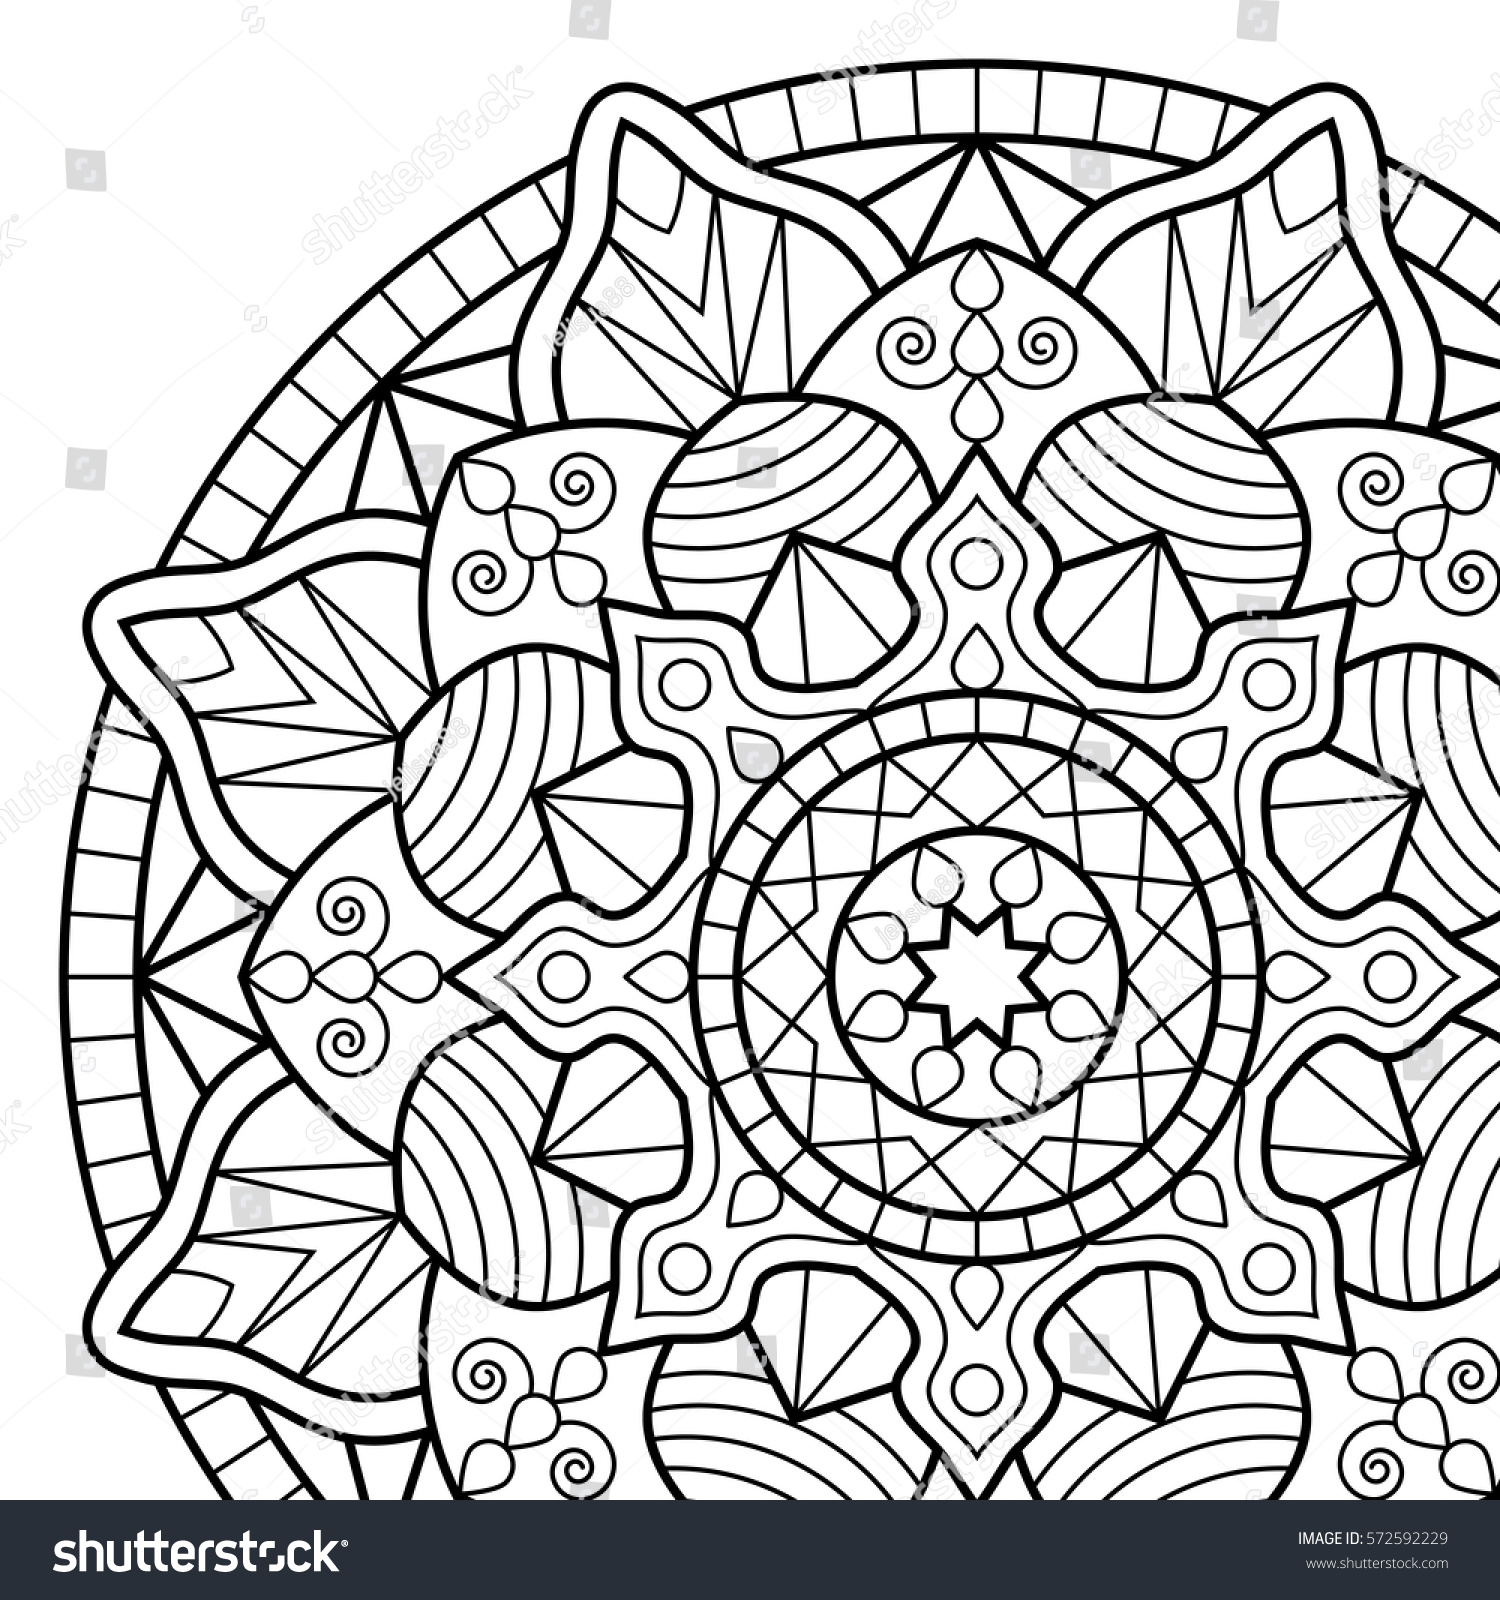 6700 Henna Flower Coloring Pages  Images